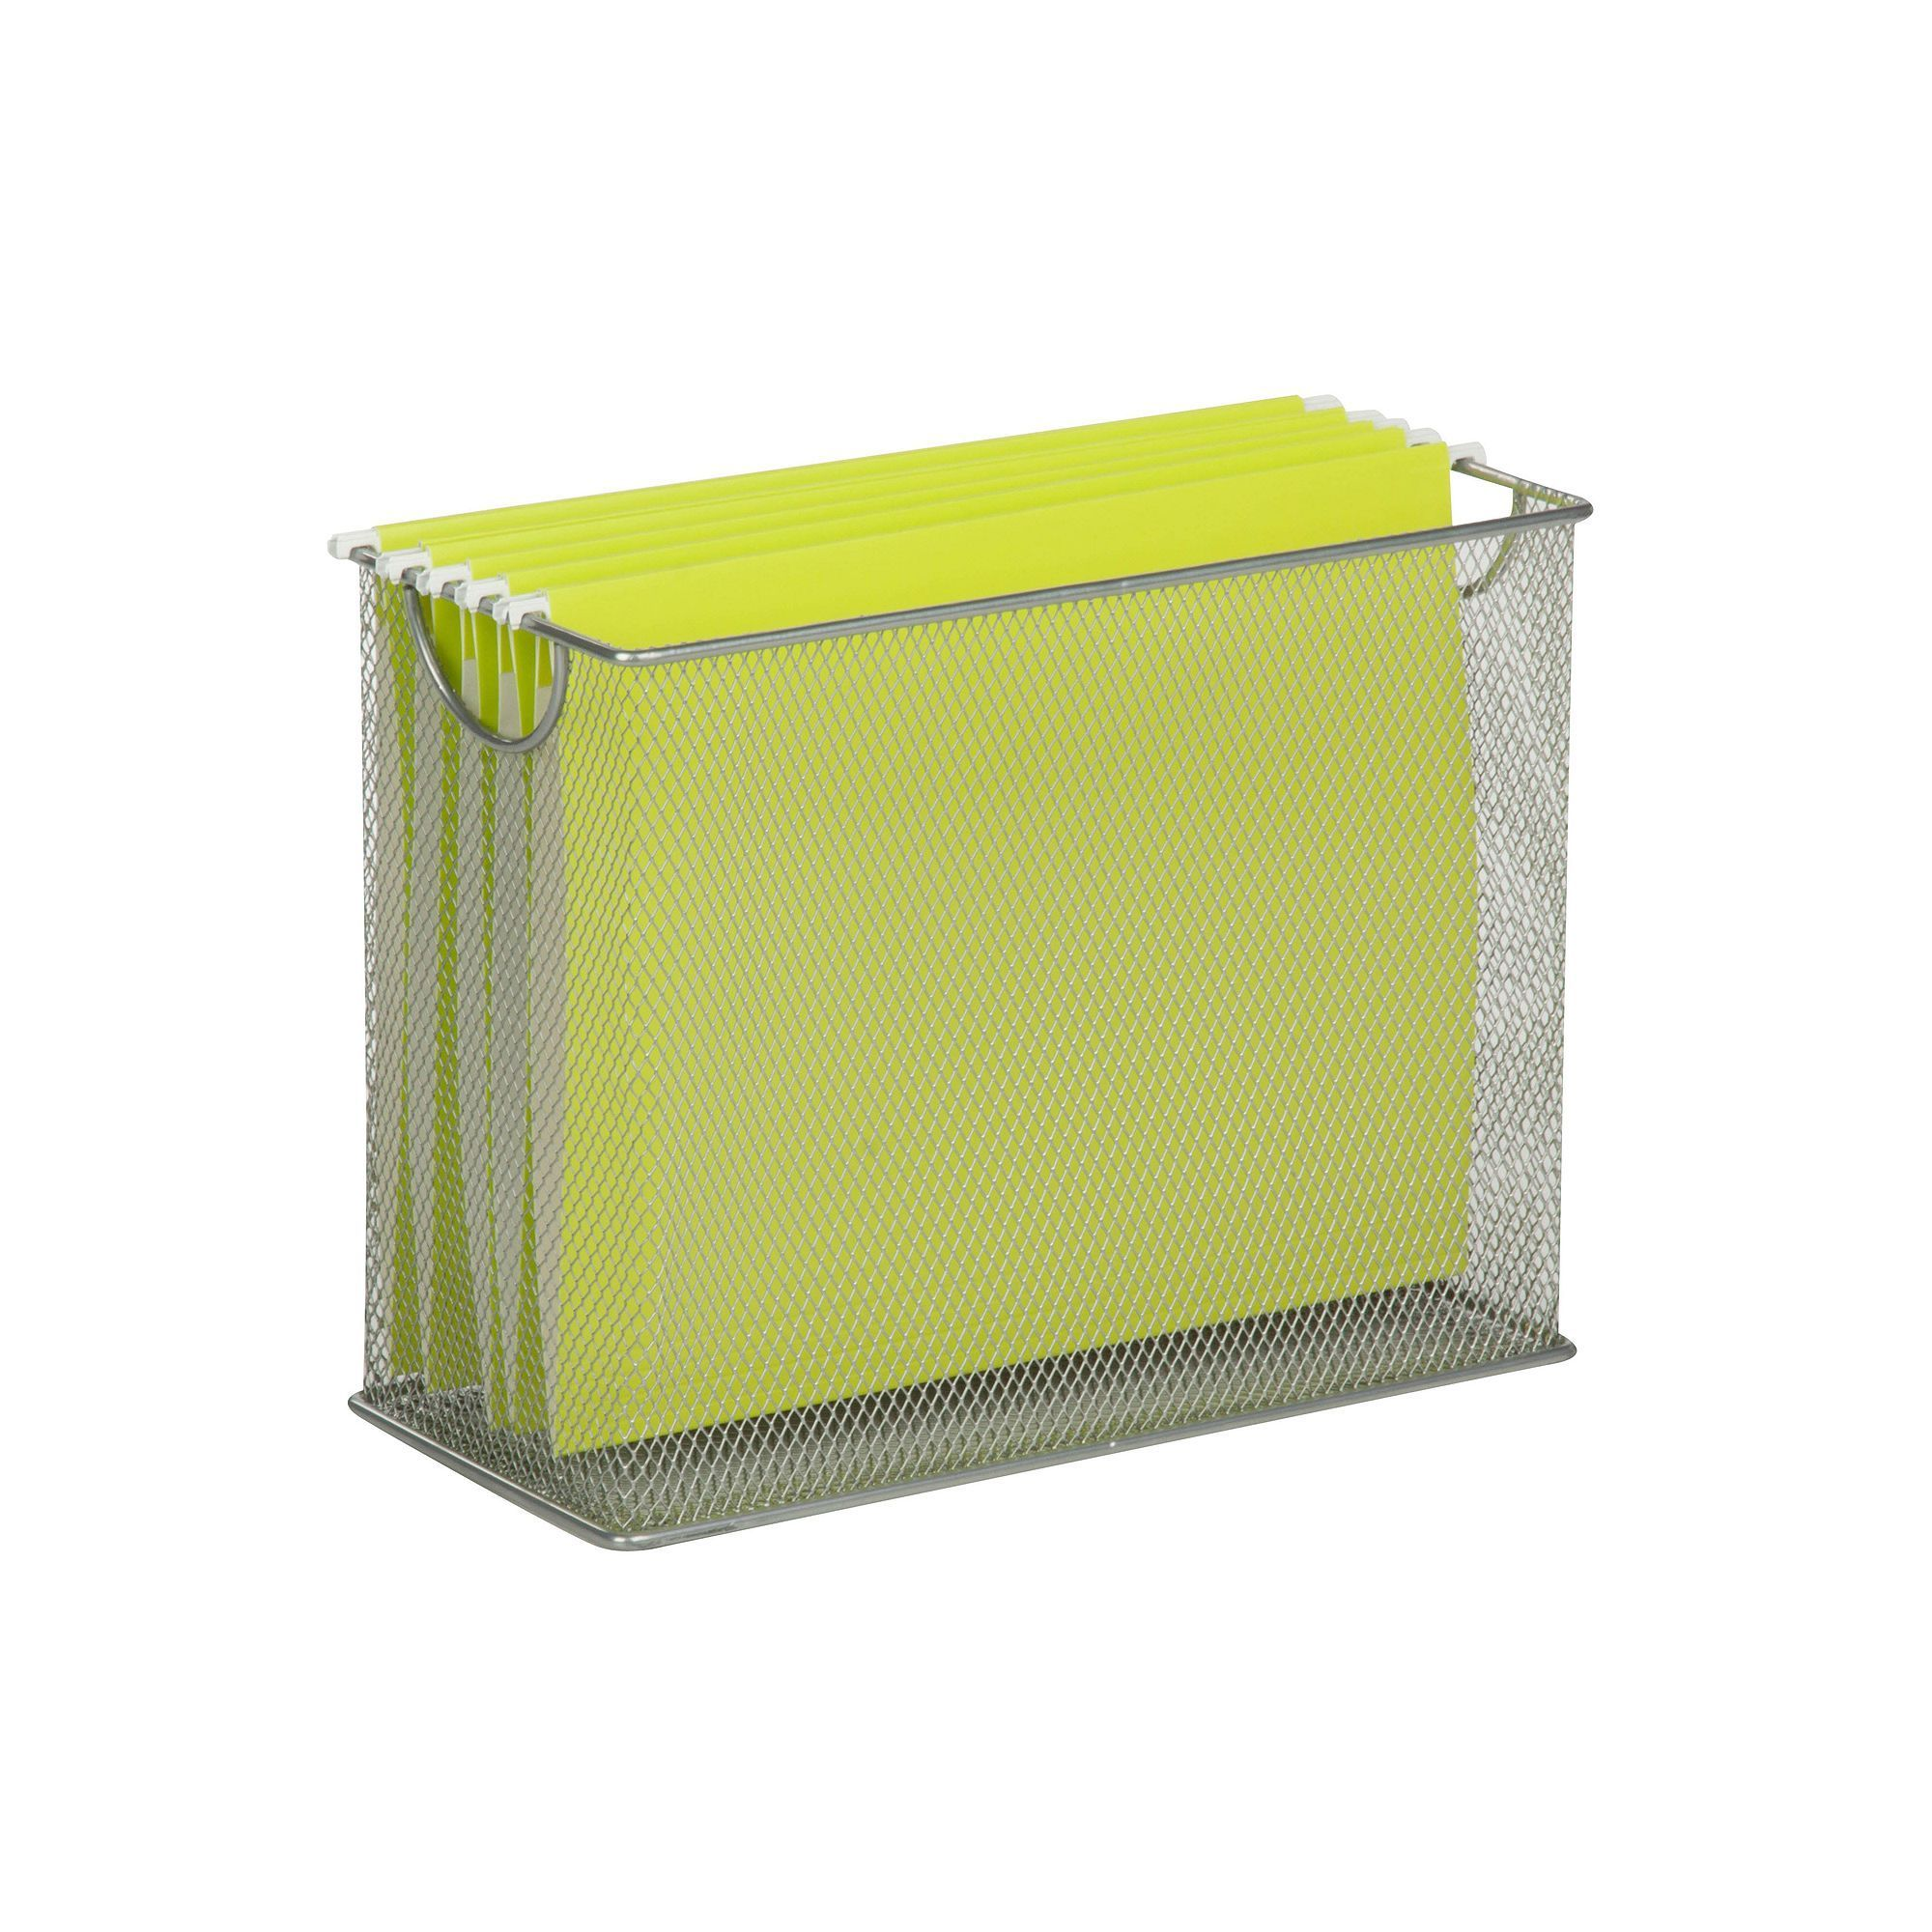 Honey-Can-Do Table Top Hanging File Organizer, Silver | Hanging ...